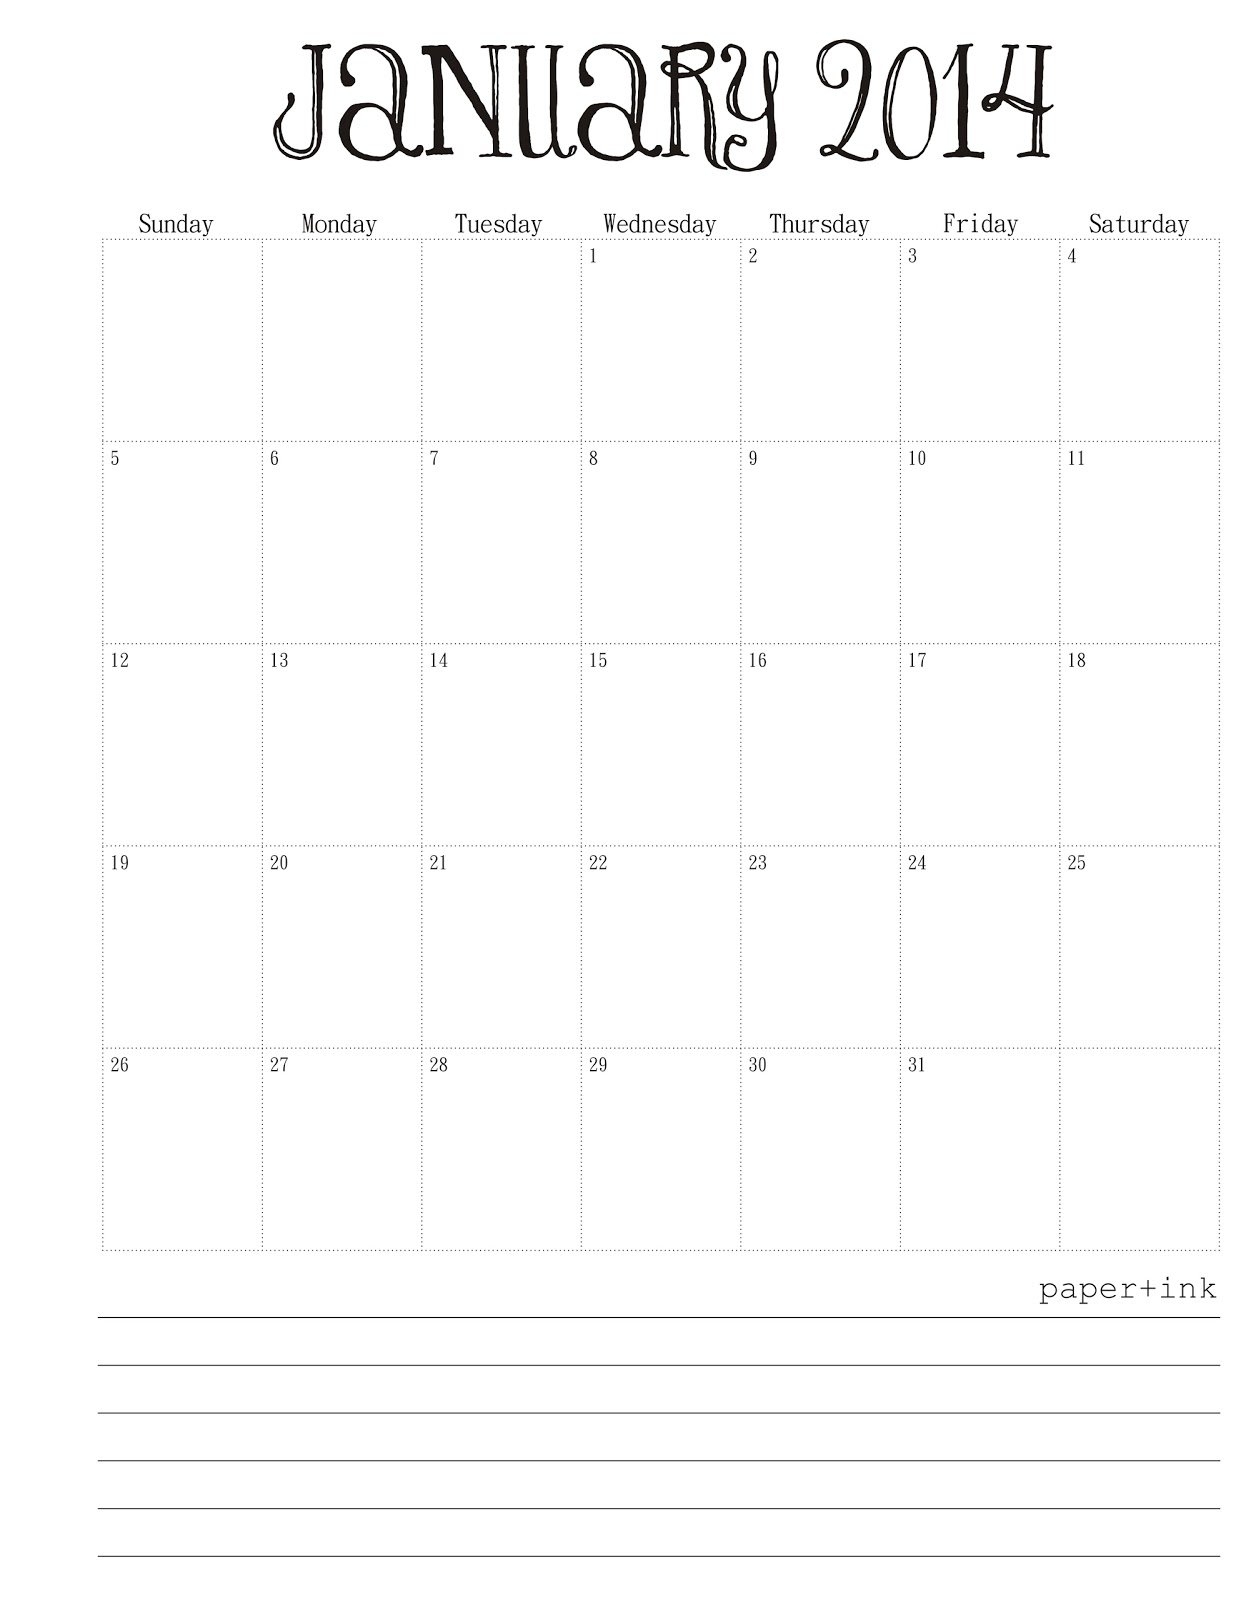 Free Calendar: January, 2014 Premade Calendar With Time Slots For April And May